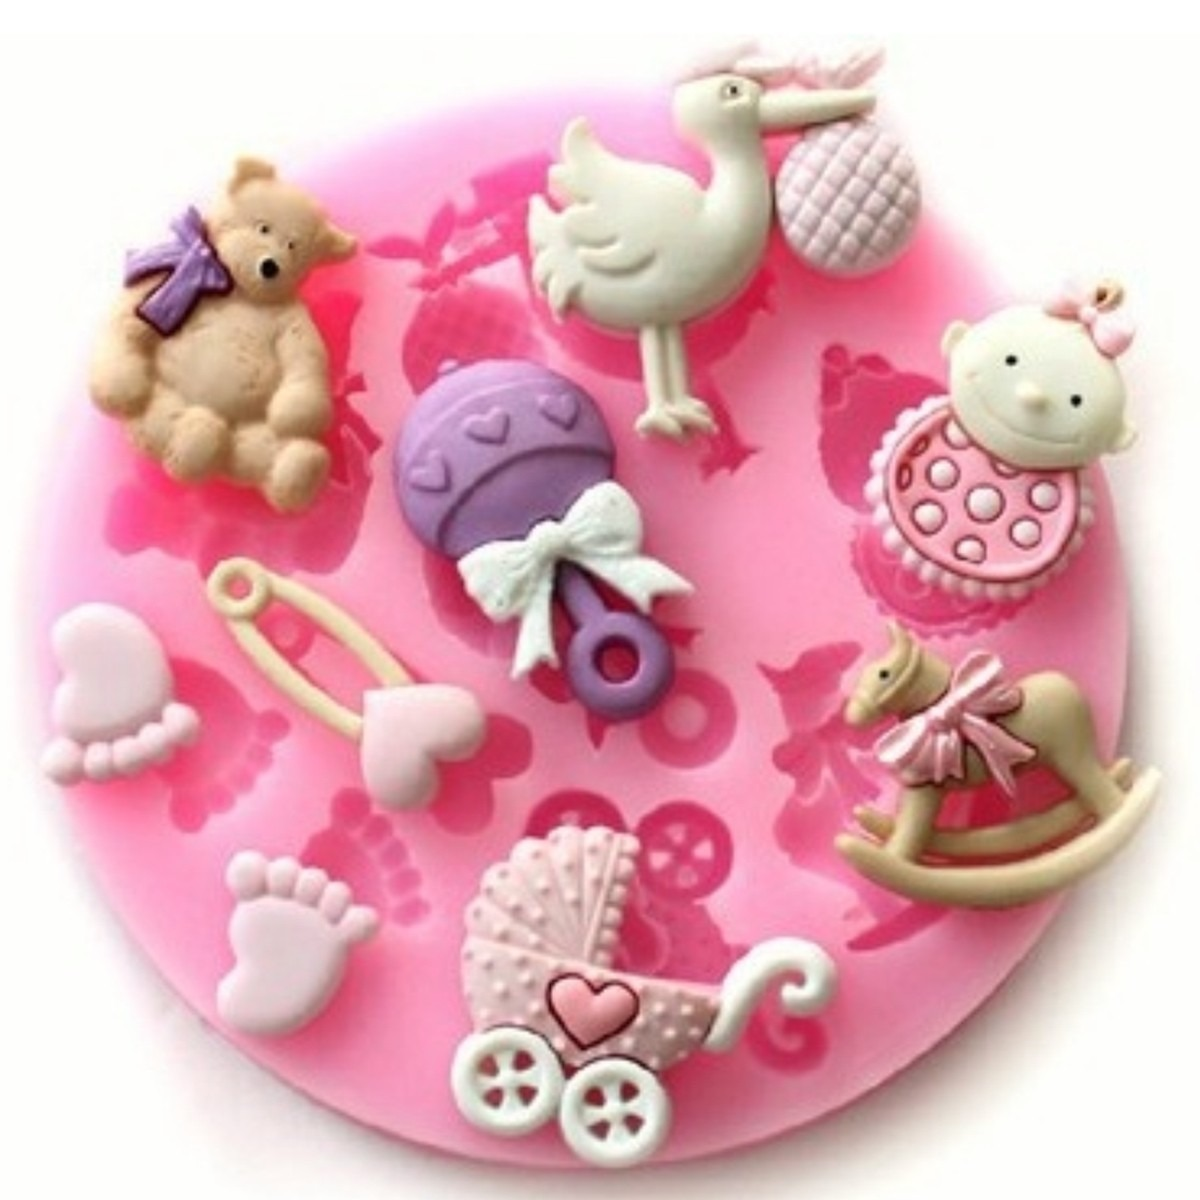 fd47af836 Molde Silicone Bebe Biscuit Pasta Americana Chocolate - R  19